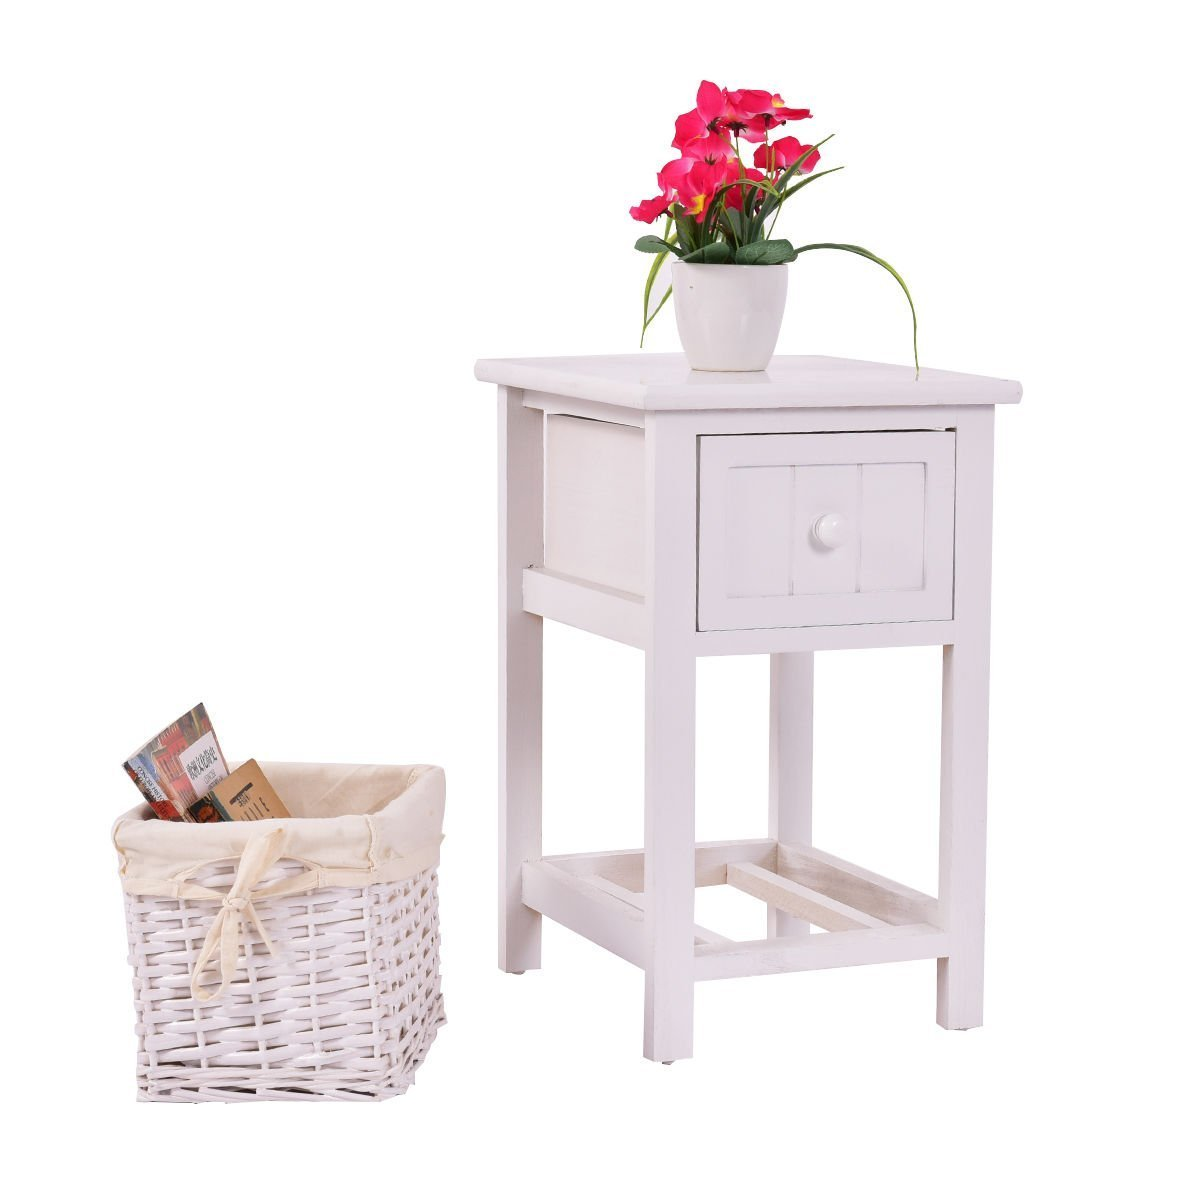 Giantex Mini Night Stand with Drawer and Layer Wood Bedside End Table Organizer Bedroom Nighstands with Wicker Basket